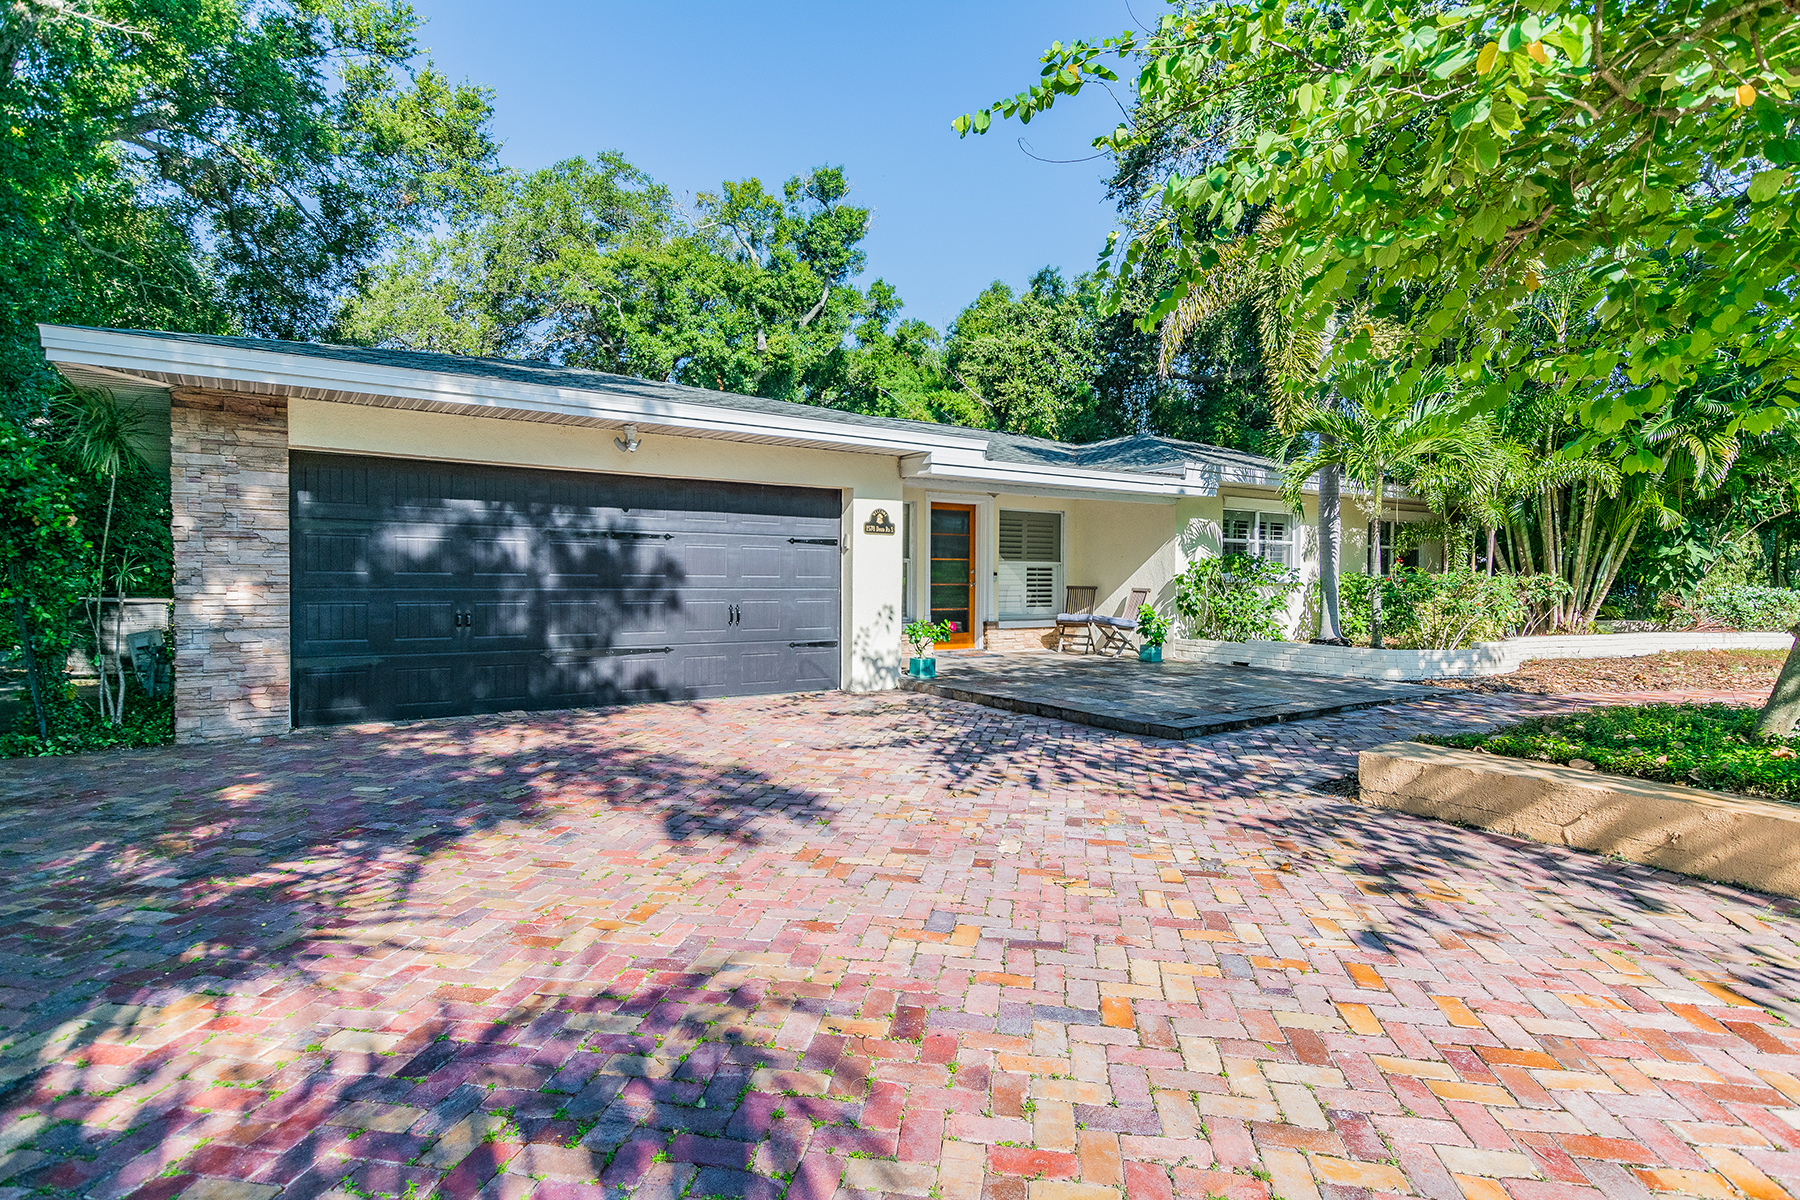 Single Family Homes for Active at BELLEAIR 1578 Druid Rd S Belleair, Florida 33756 United States